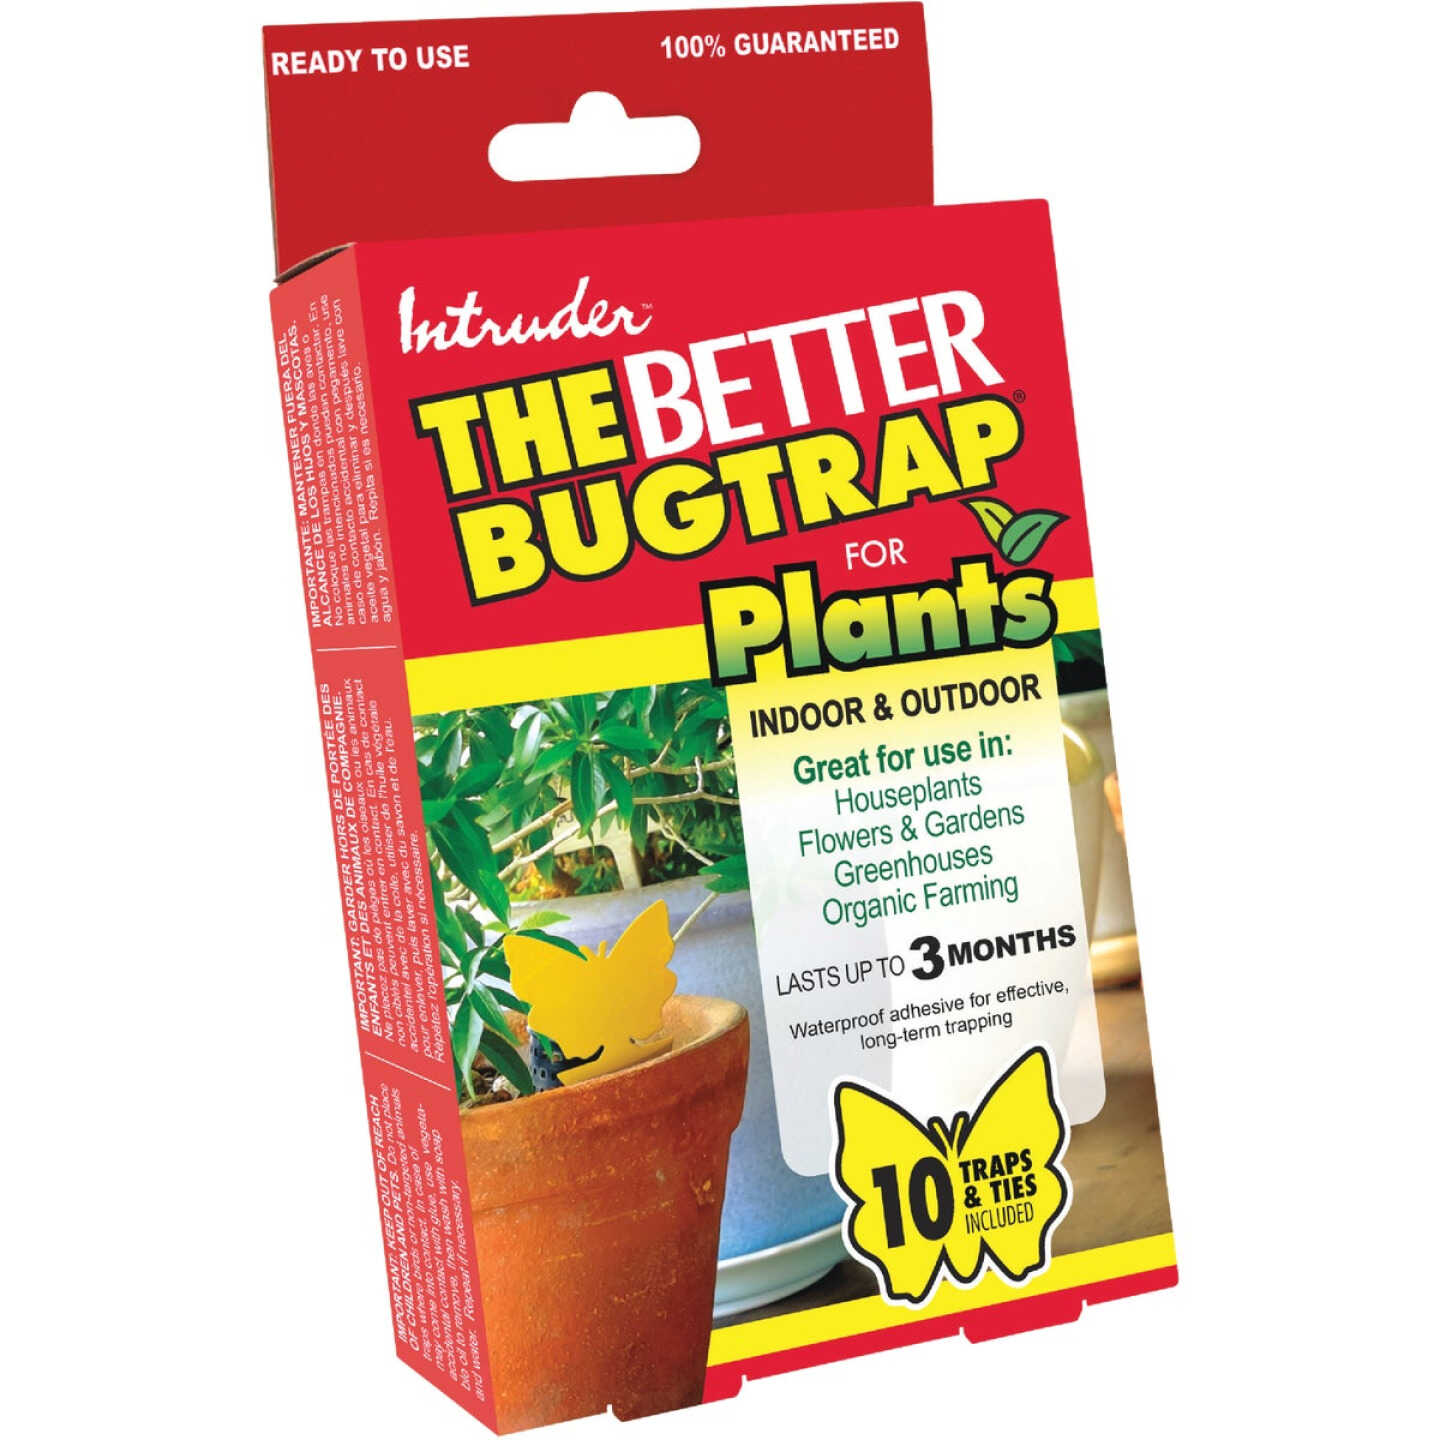 Intruder The Better Bugtrap for Plants Disposable Indoor/Outdoor Insect Trap (10-Pack) Image 1